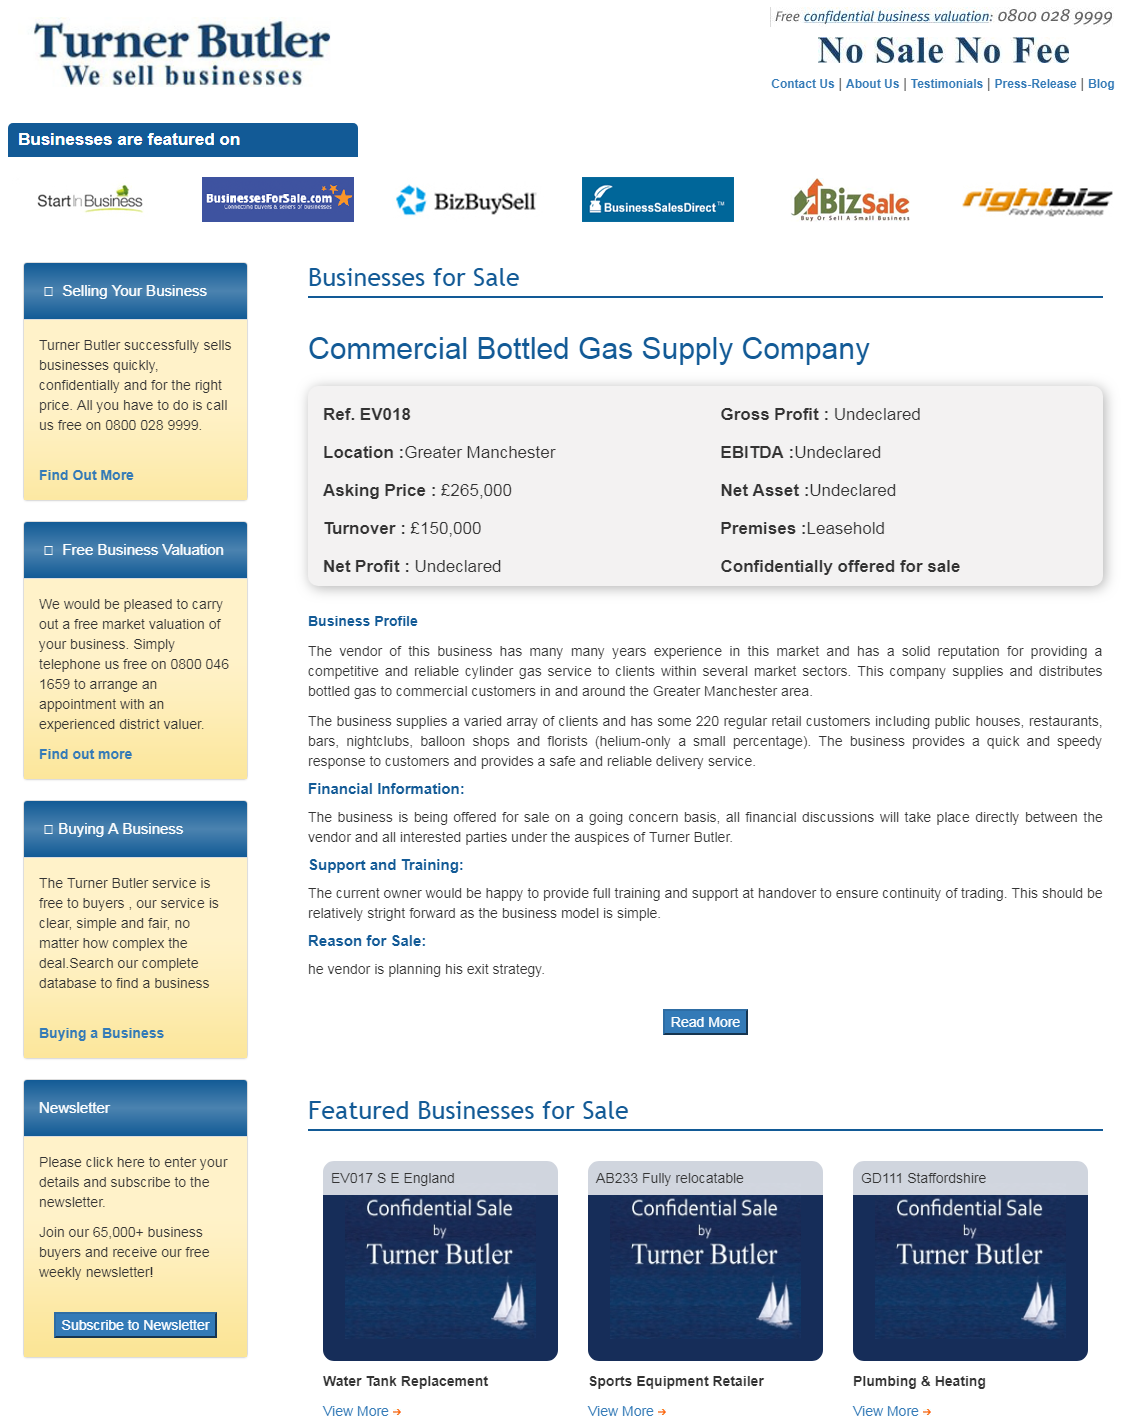 Are you looking to buy a bottled gas supply business for